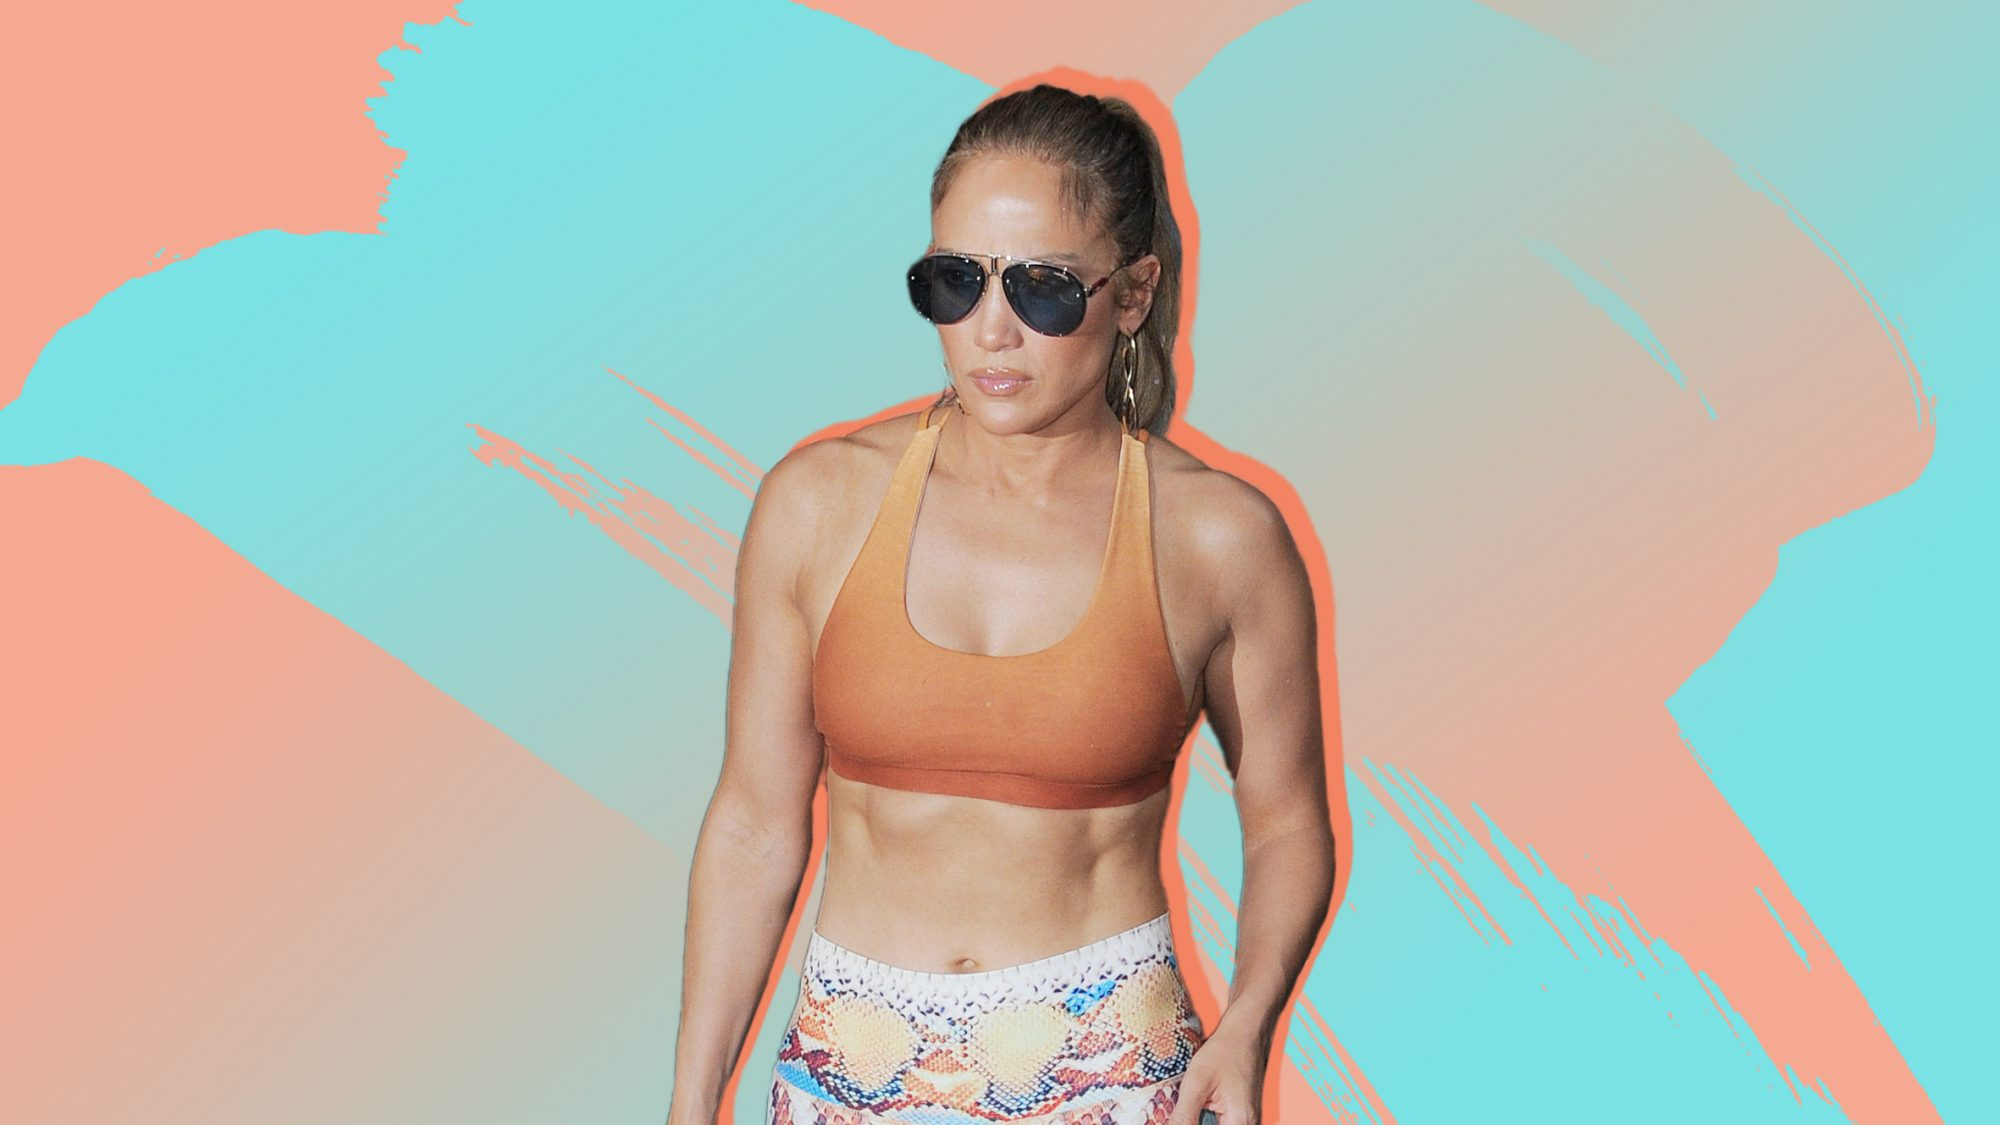 J. Lo's Abs Are On Fire in This Super Sweaty Gym Selfie